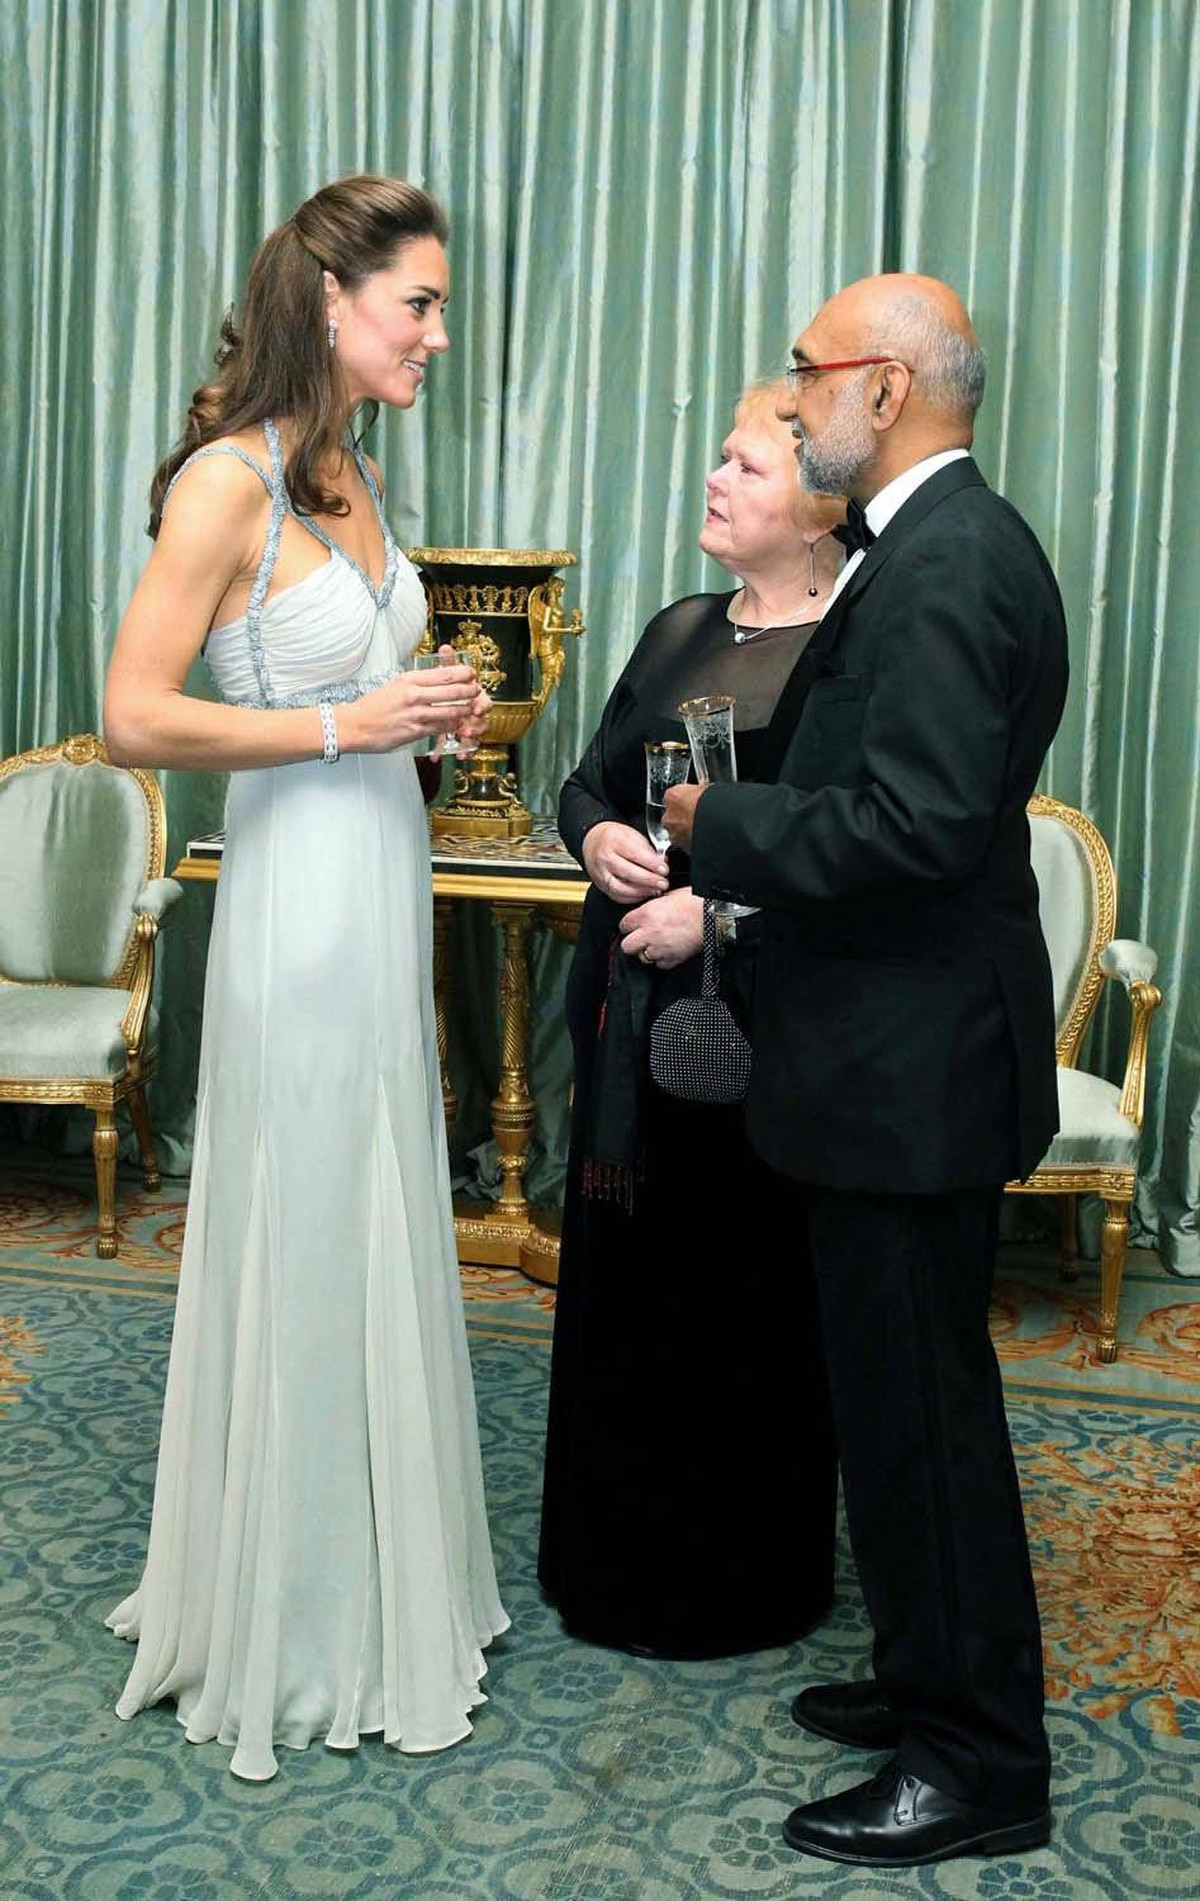 The Duchess goes with a pale colour for once, greeting guests at London's Clarence House in mint-green gown by Amanda Wakeley on October 27.